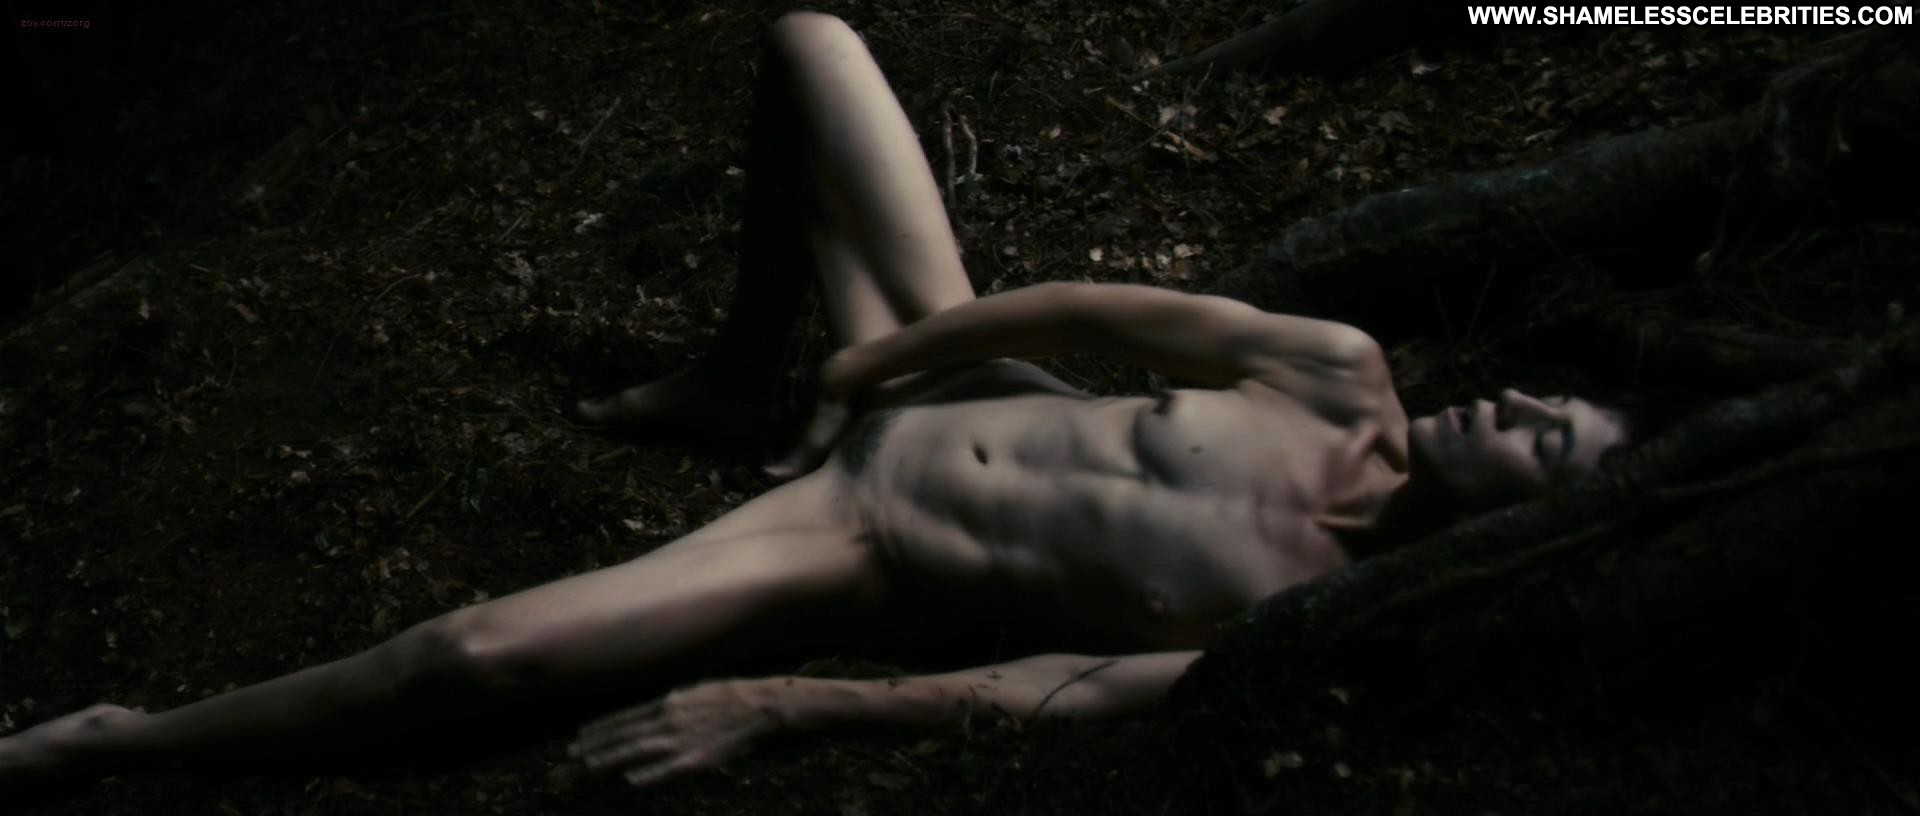 Antichrist (2009) sex scenes